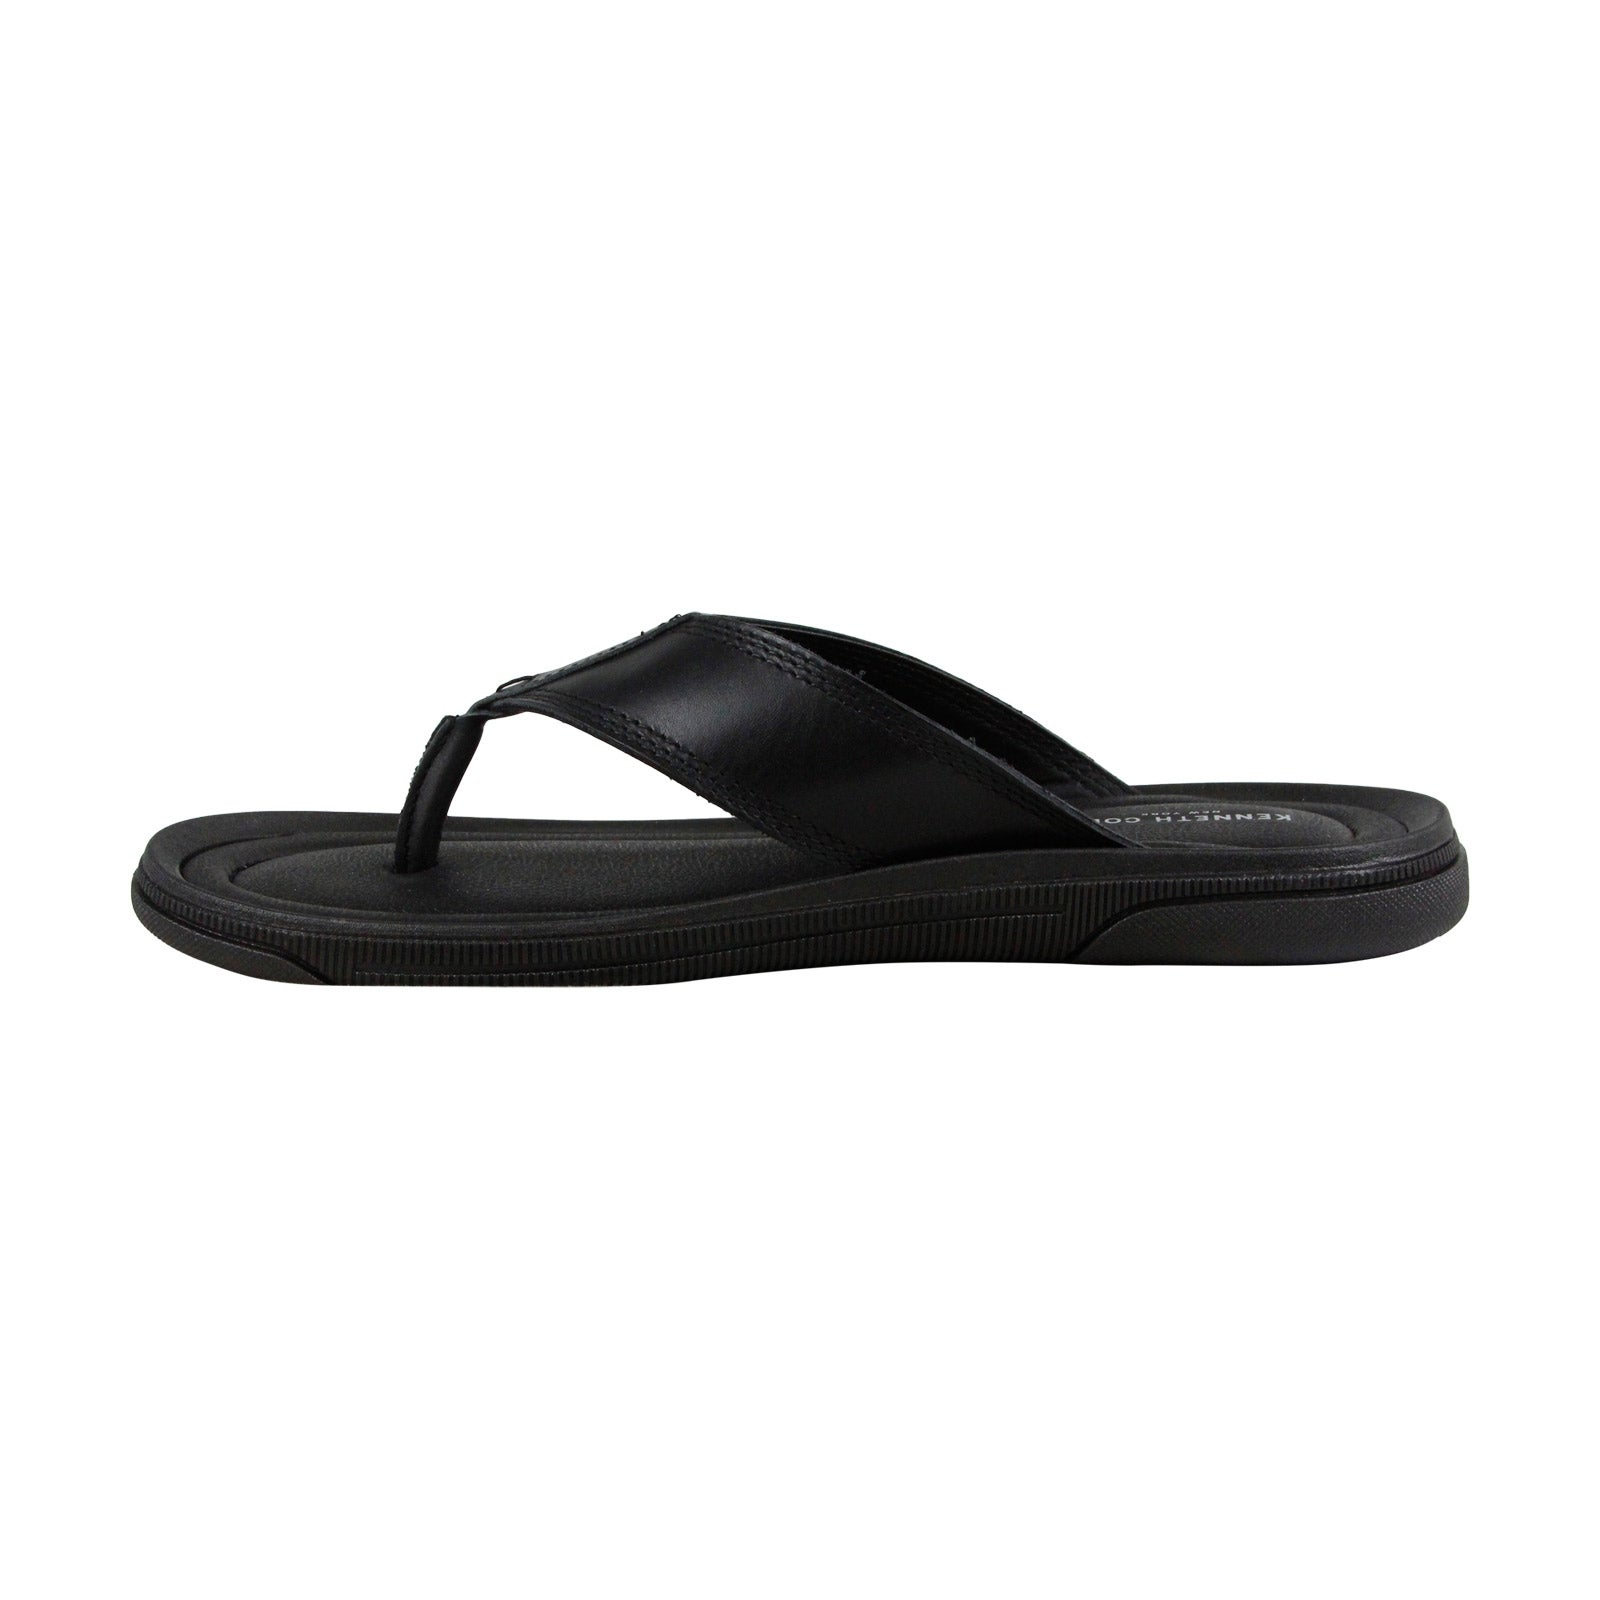 a393bb50f981 Shop Kenneth Cole New York Yard Sandal B Mens Black Flip Flops Sandals  Shoes - Free Shipping On Orders Over  45 - Overstock - 22410192